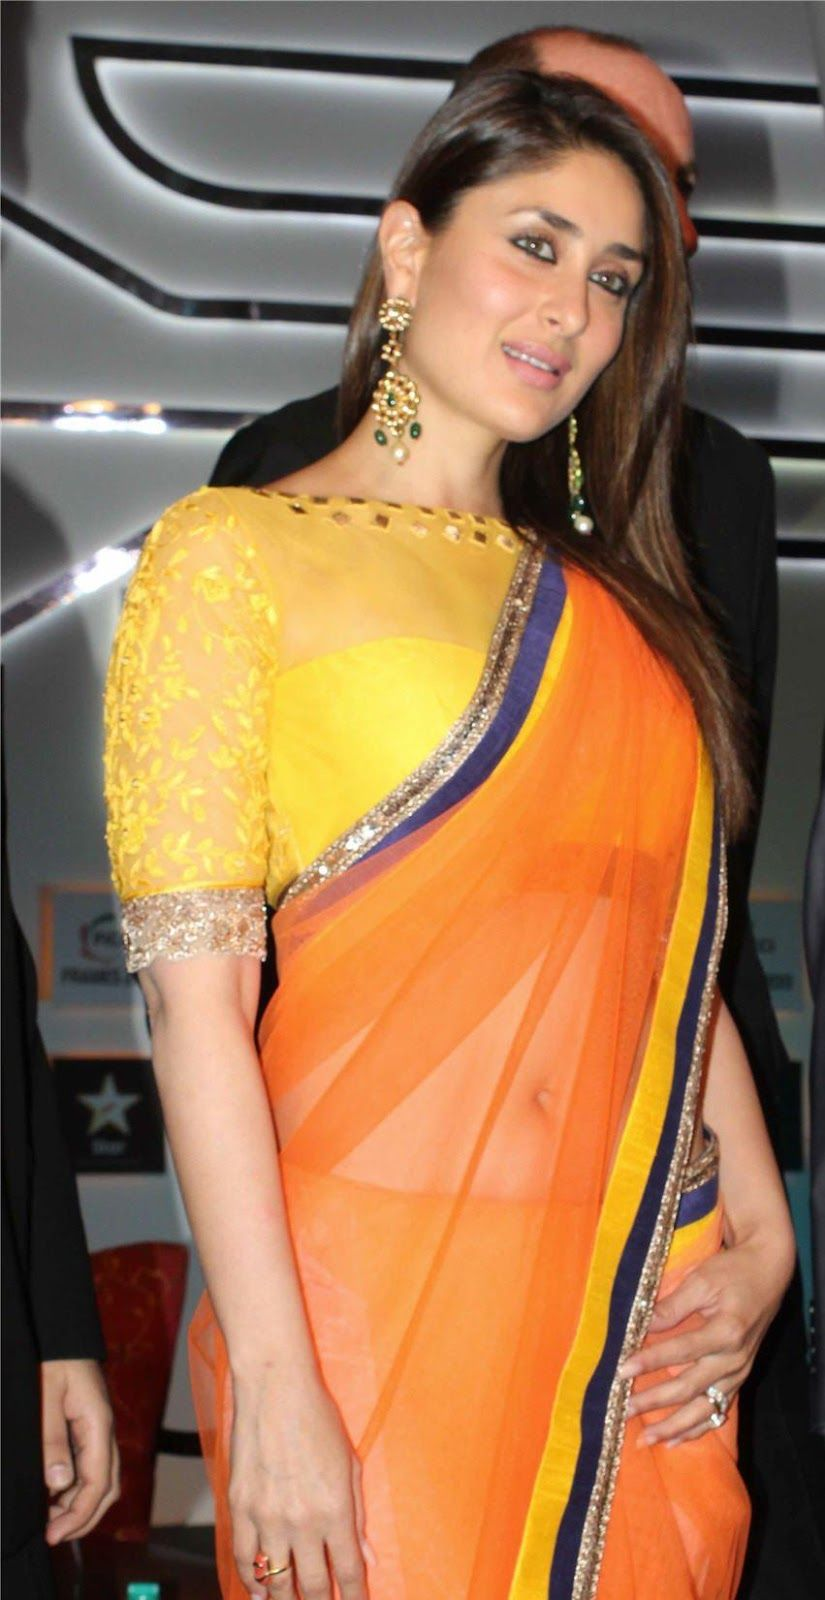 f0f09008ceb57d Kareena Kapoor Saree Blouse Designs #Blouse #Design #Saree #Bollywood  #India #KareenaKapoor